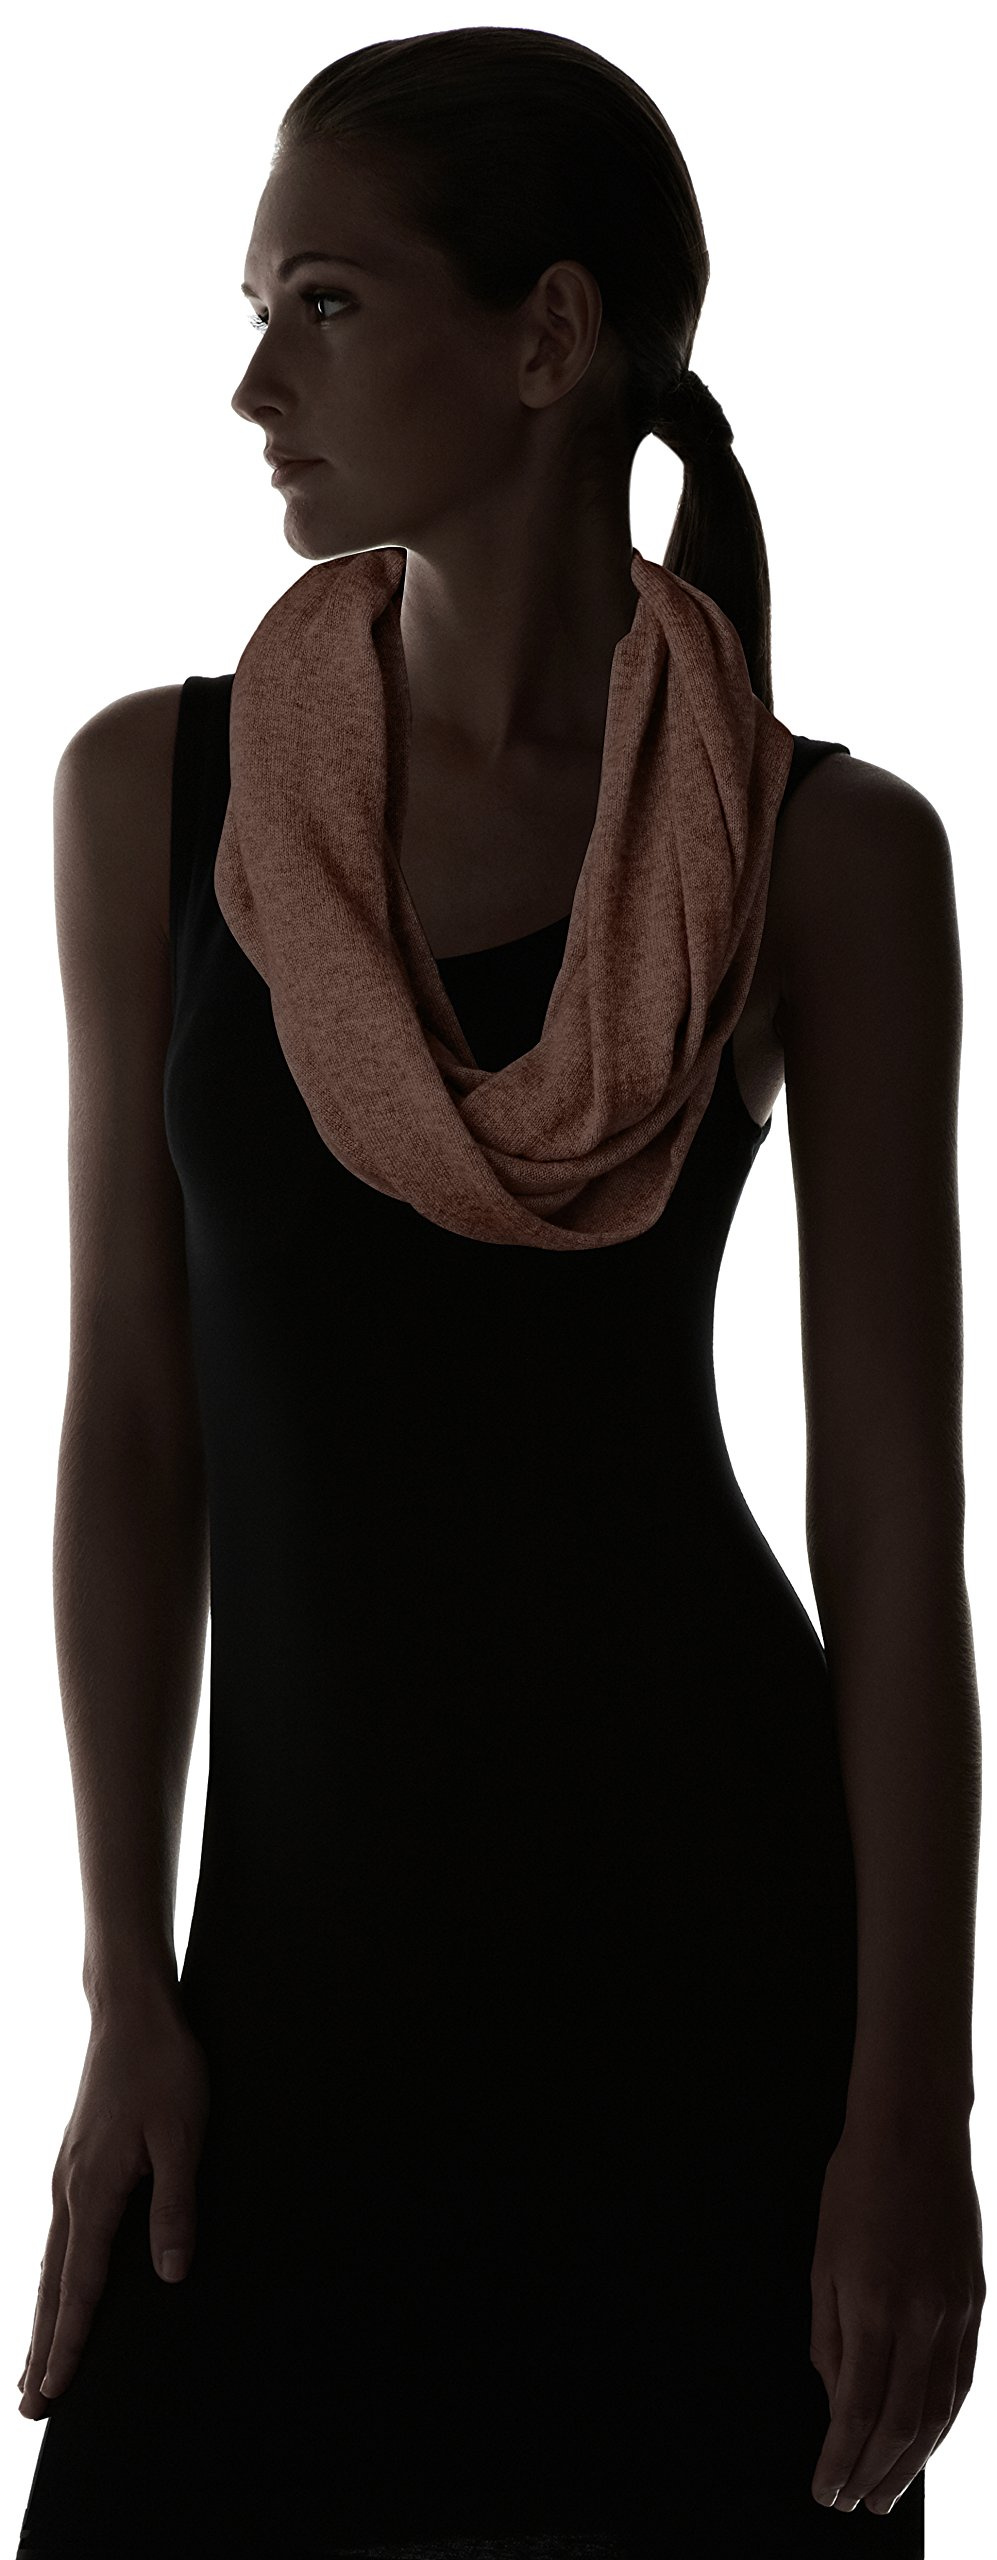 bela.nyc Women's Cashmere Solid Infinity Scarf, Chocolate Heather, One Size by bela.nyc (Image #3)